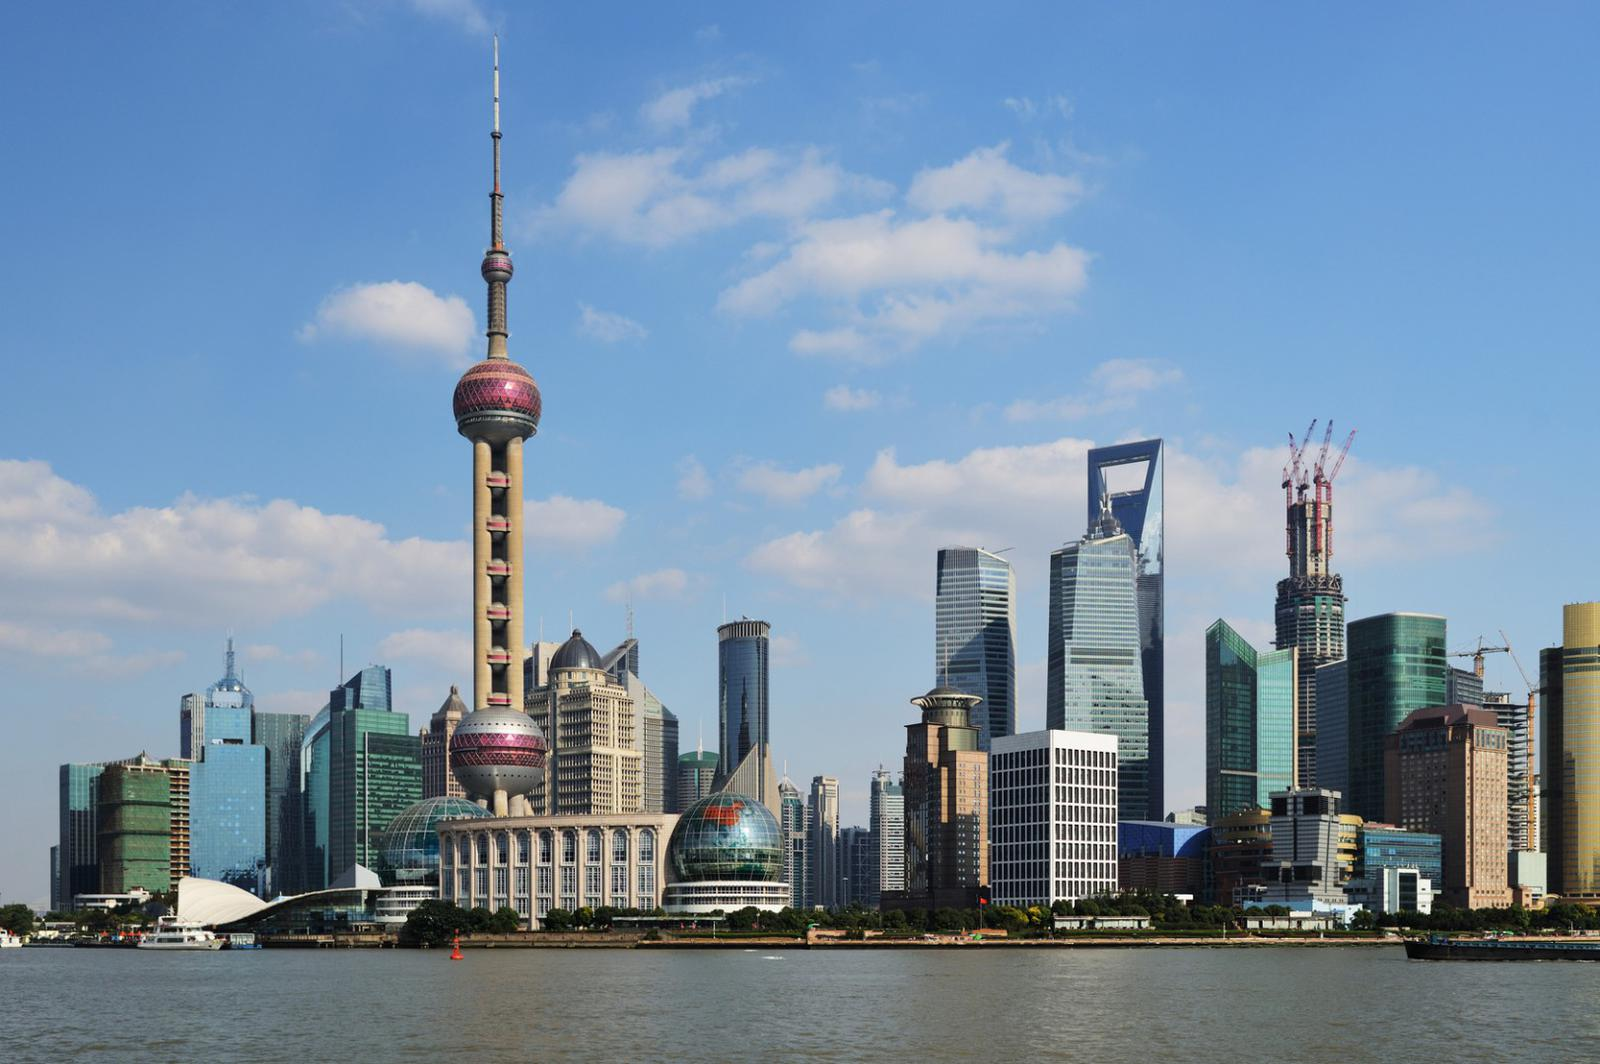 View of Shanghai World Financial Center from the Bund